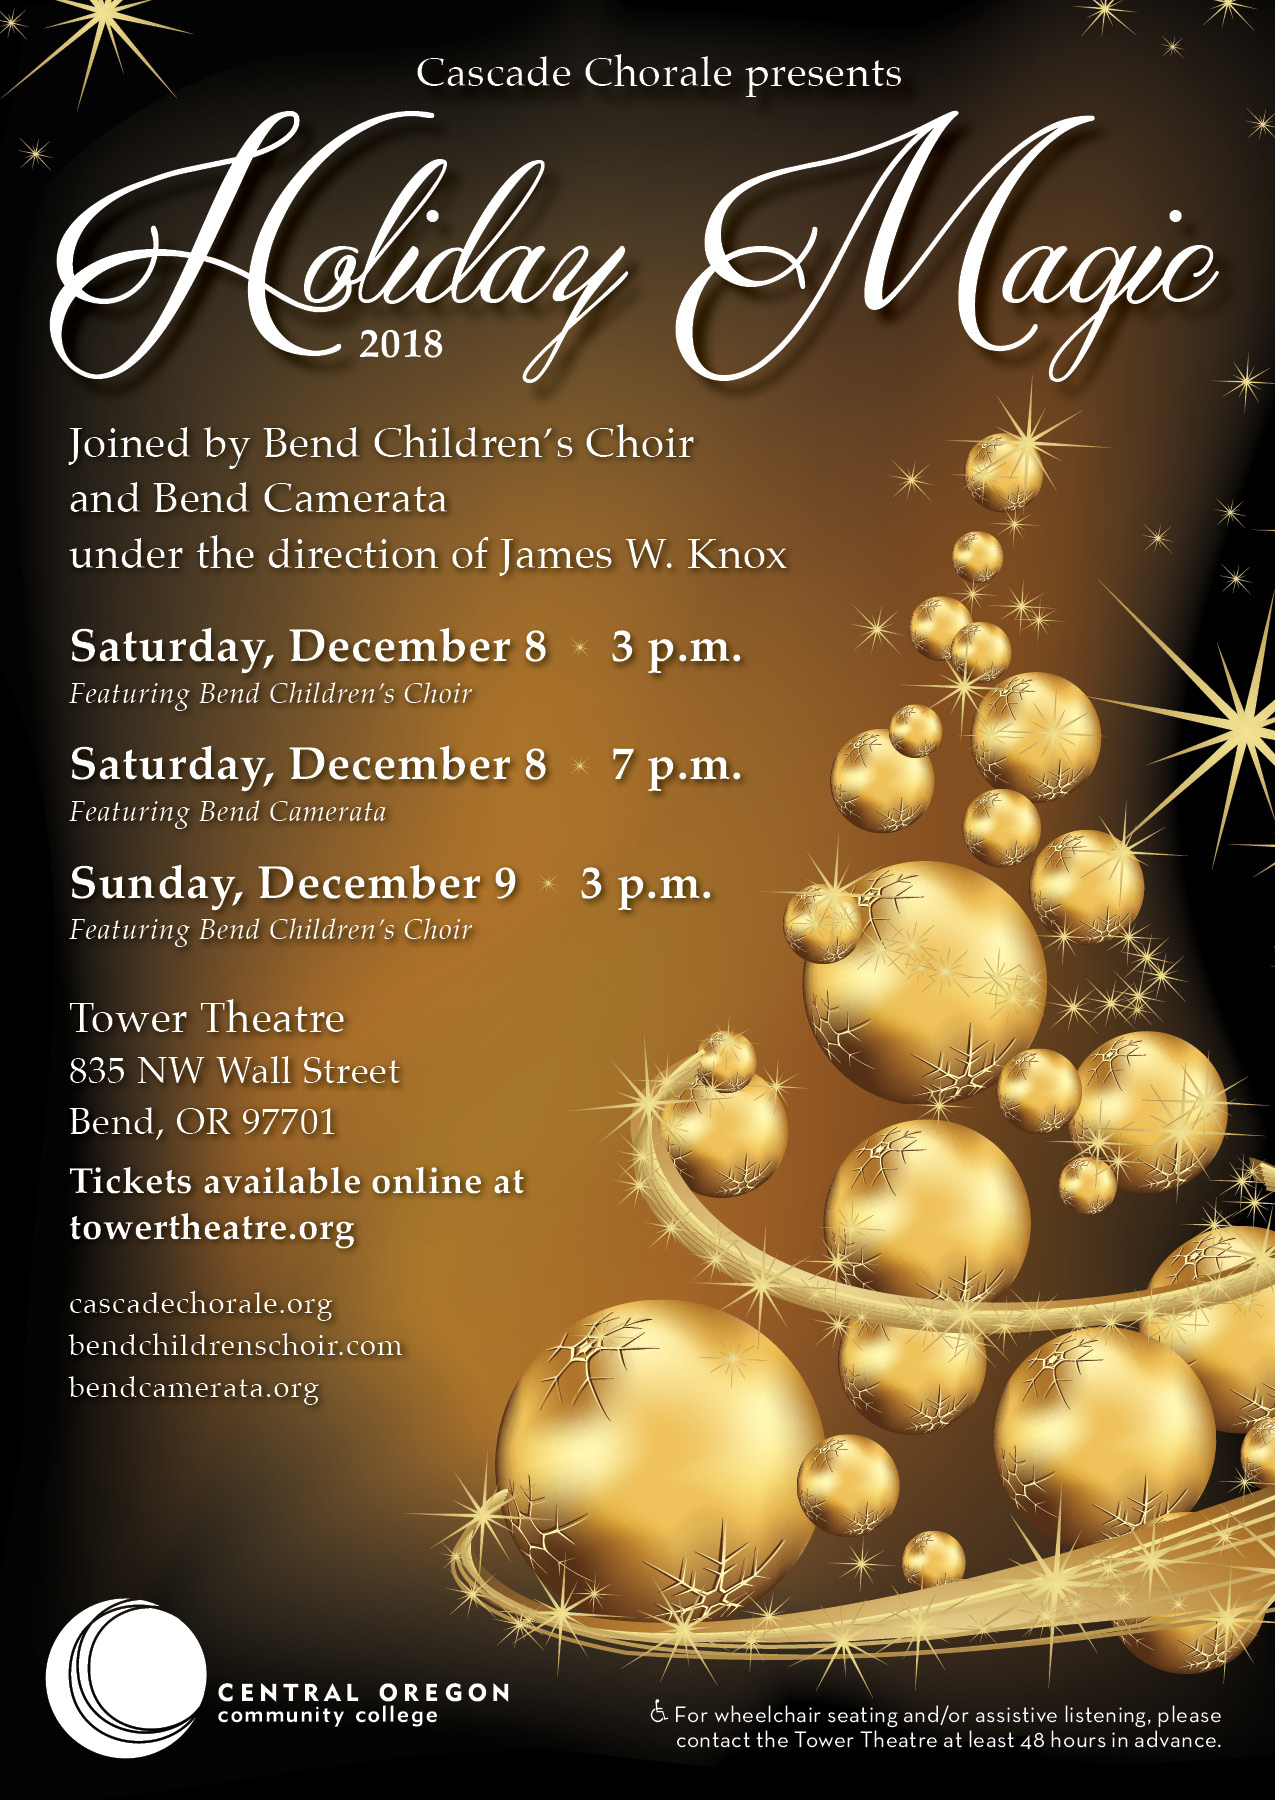 Holiday Magic 2018 @ Tower Theatre | Bend | Oregon | United States